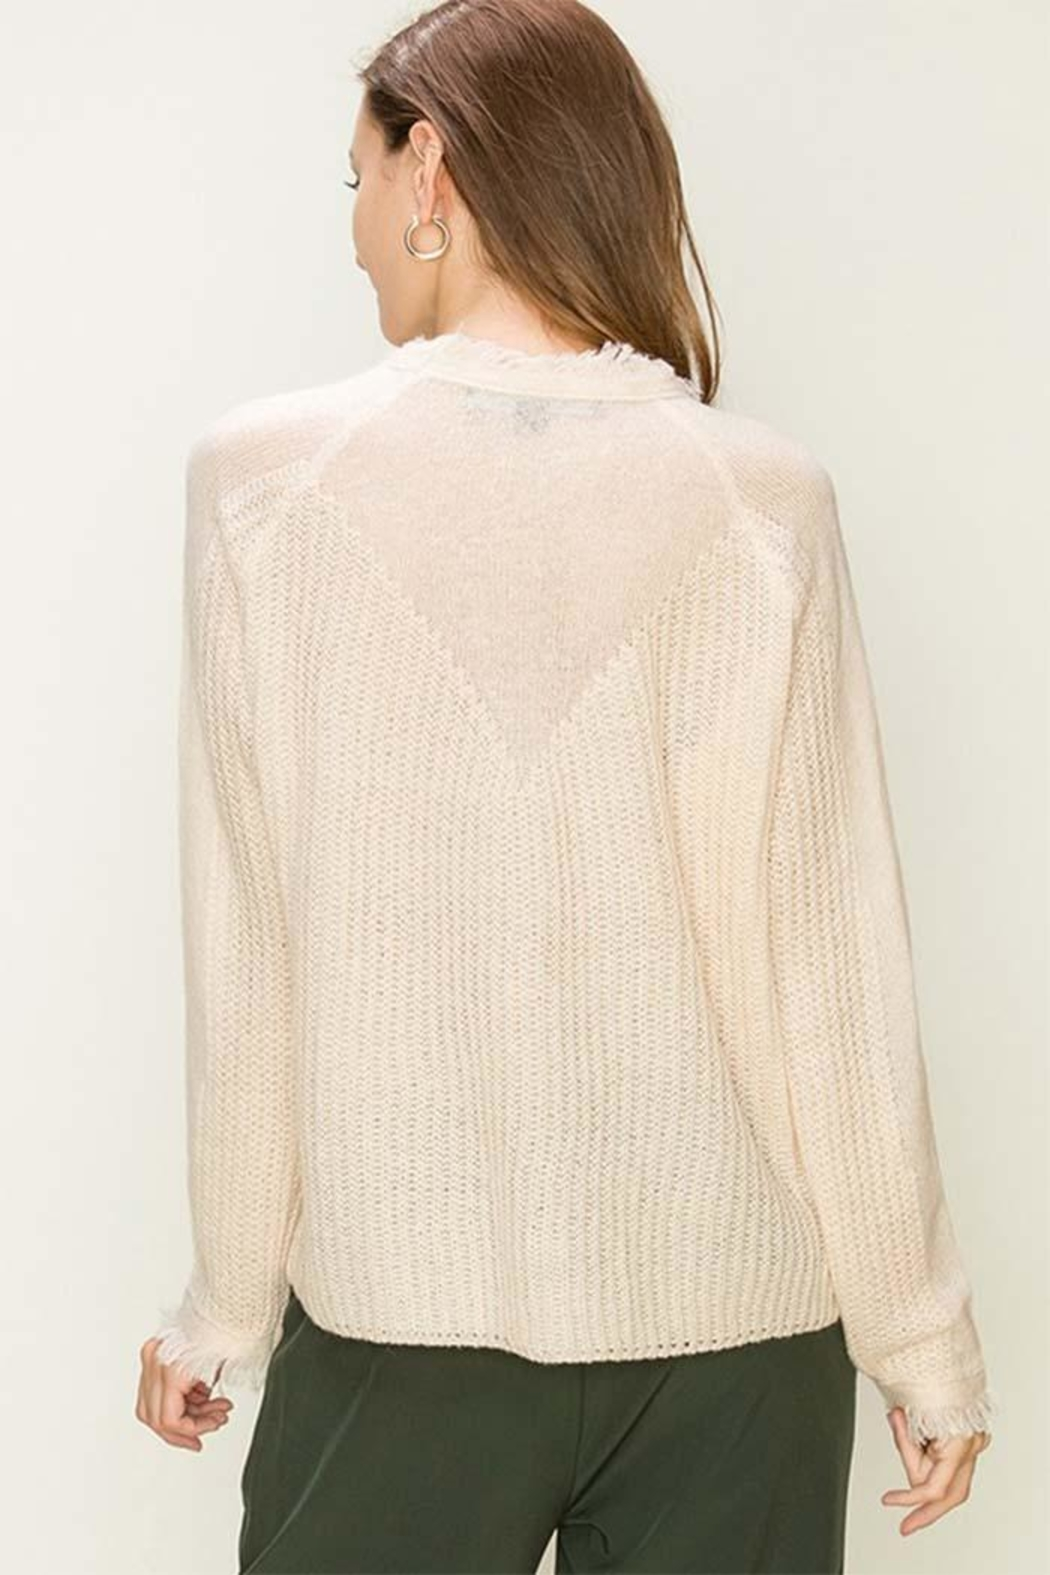 HYFVE Cream Distressed Sweater - Side Cropped Image